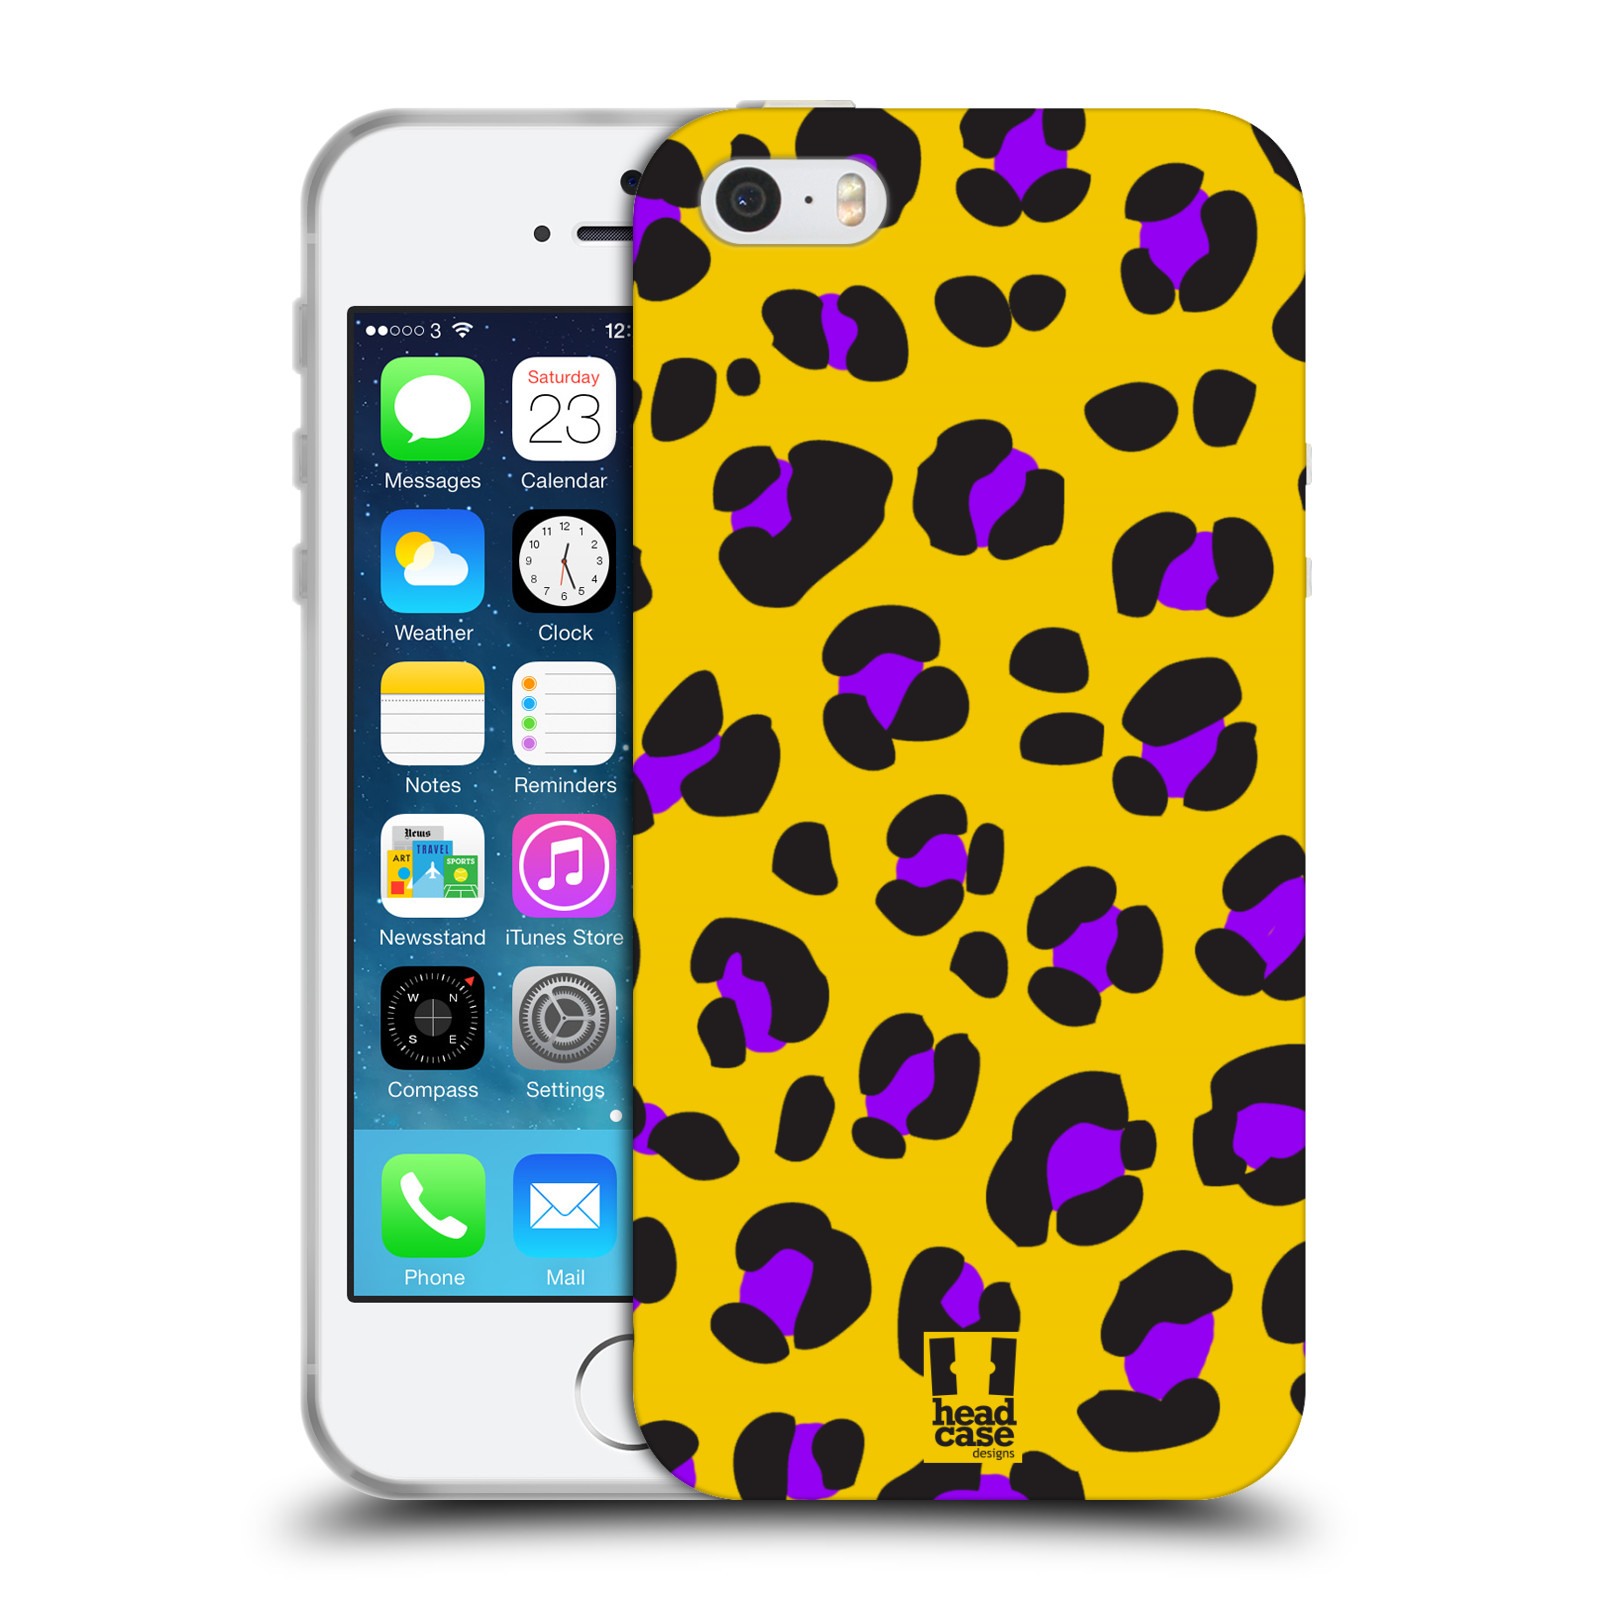 HEAD CASE MAD PRINTS SERIES 1 TPU GEL BACK CASE COVER FOR APPLE iPHONE 5S